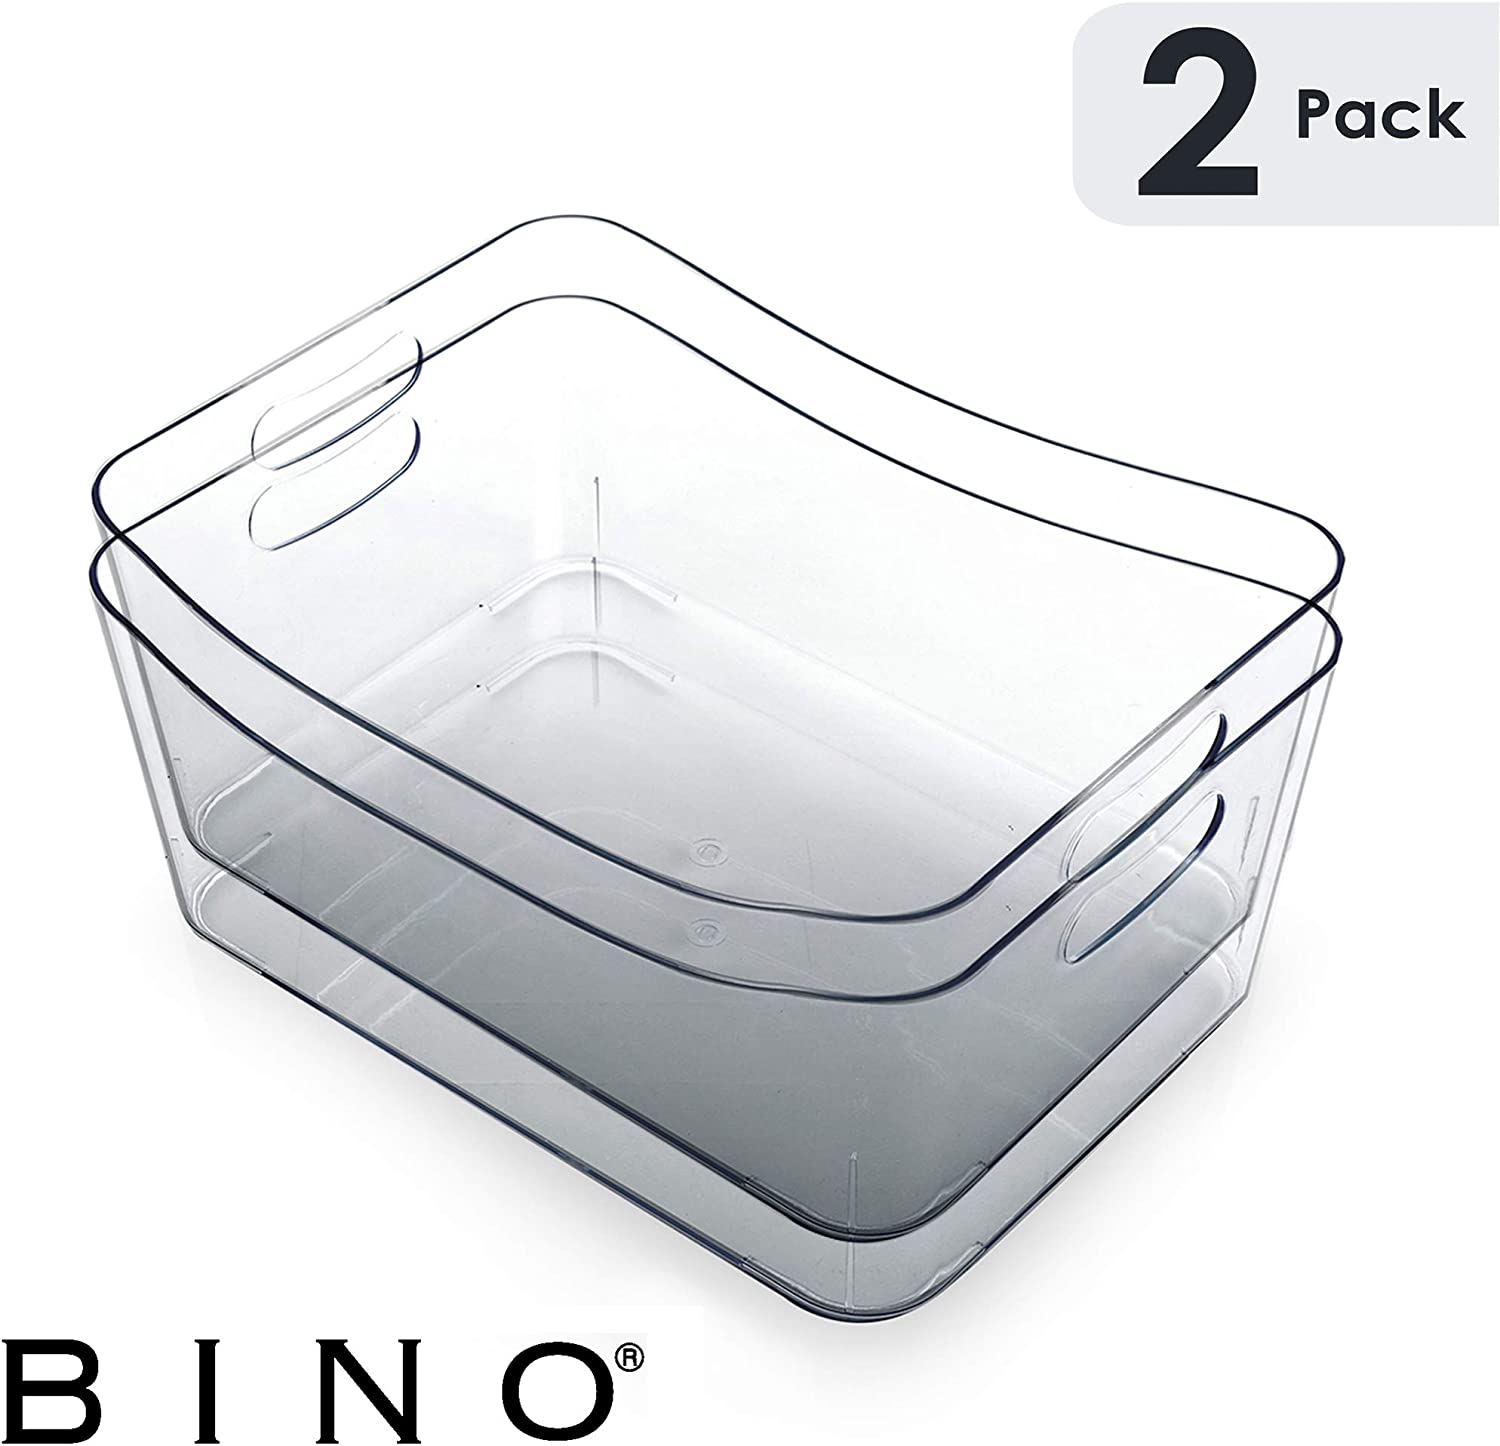 BINO Clear Plastic Storage Bin with Handles - Plastic Storage Bins for Kitchen, Cabinet, and Pantry Organization and Storage - Home Organizers and Storage - Refrigerator and Freezer (2PK- Small)